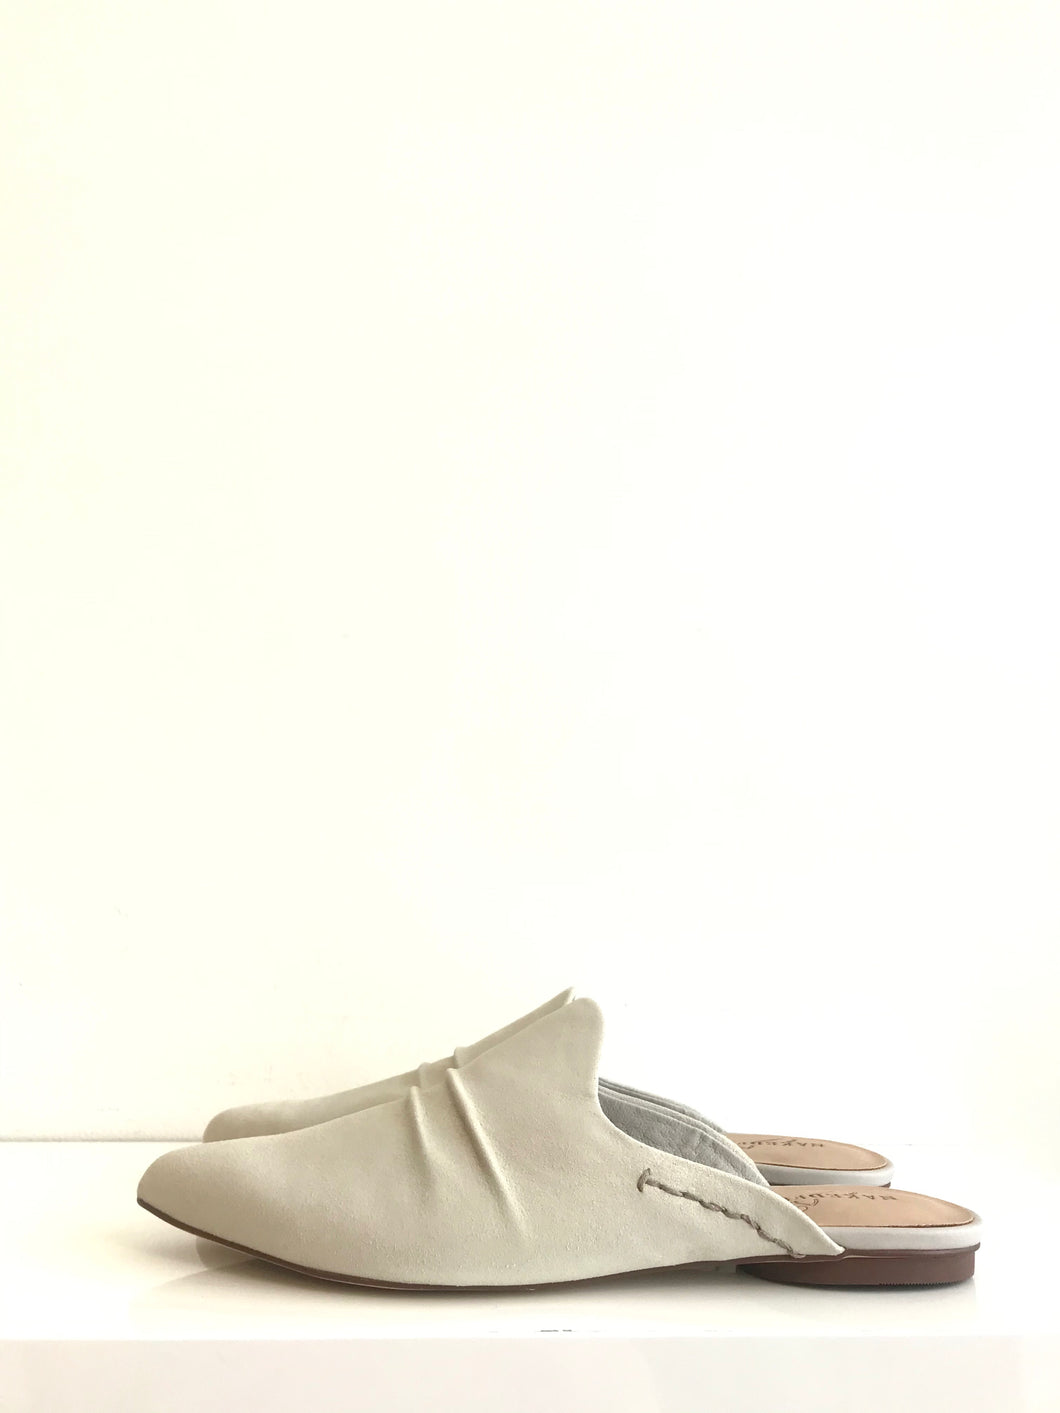 VERSUS - Pointed Toe Mule